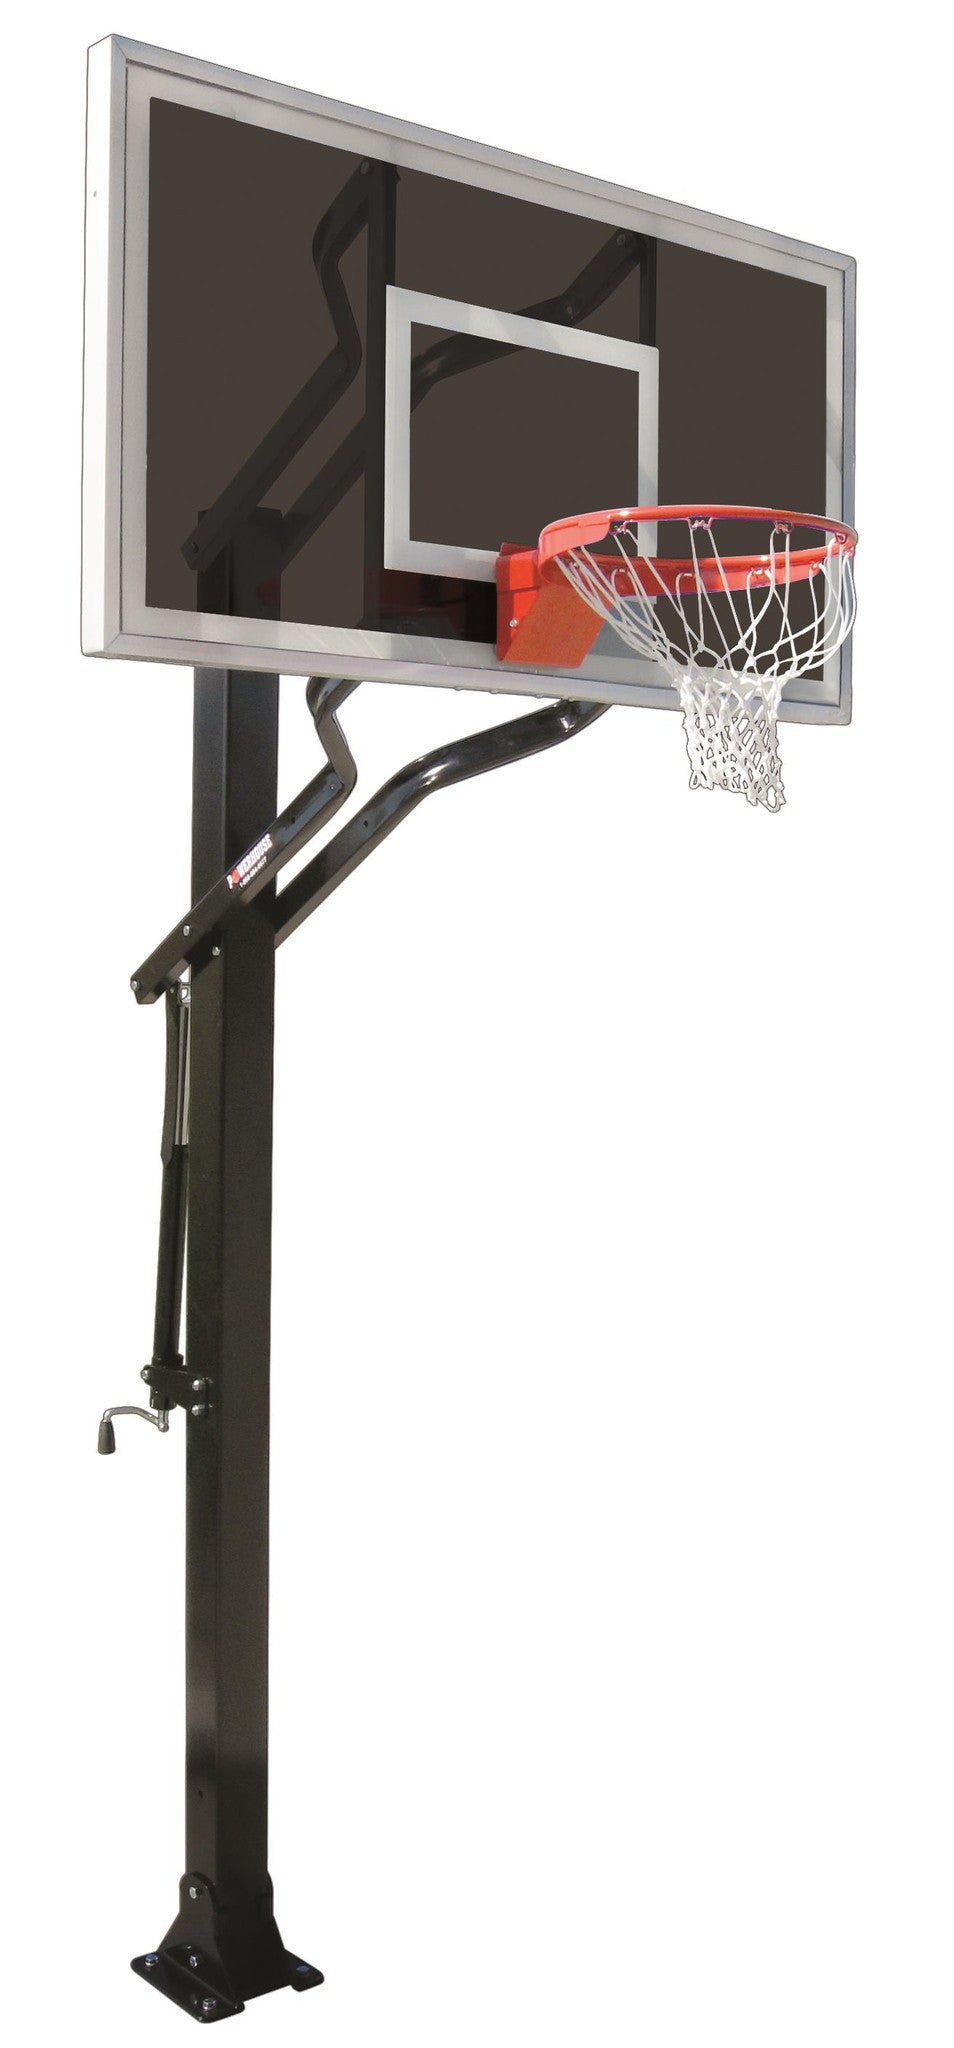 First Team Powerhouse Challenger Eclipse In Ground Outdoor Adjustable Basketball Hoop 60 inch Smoked Glass